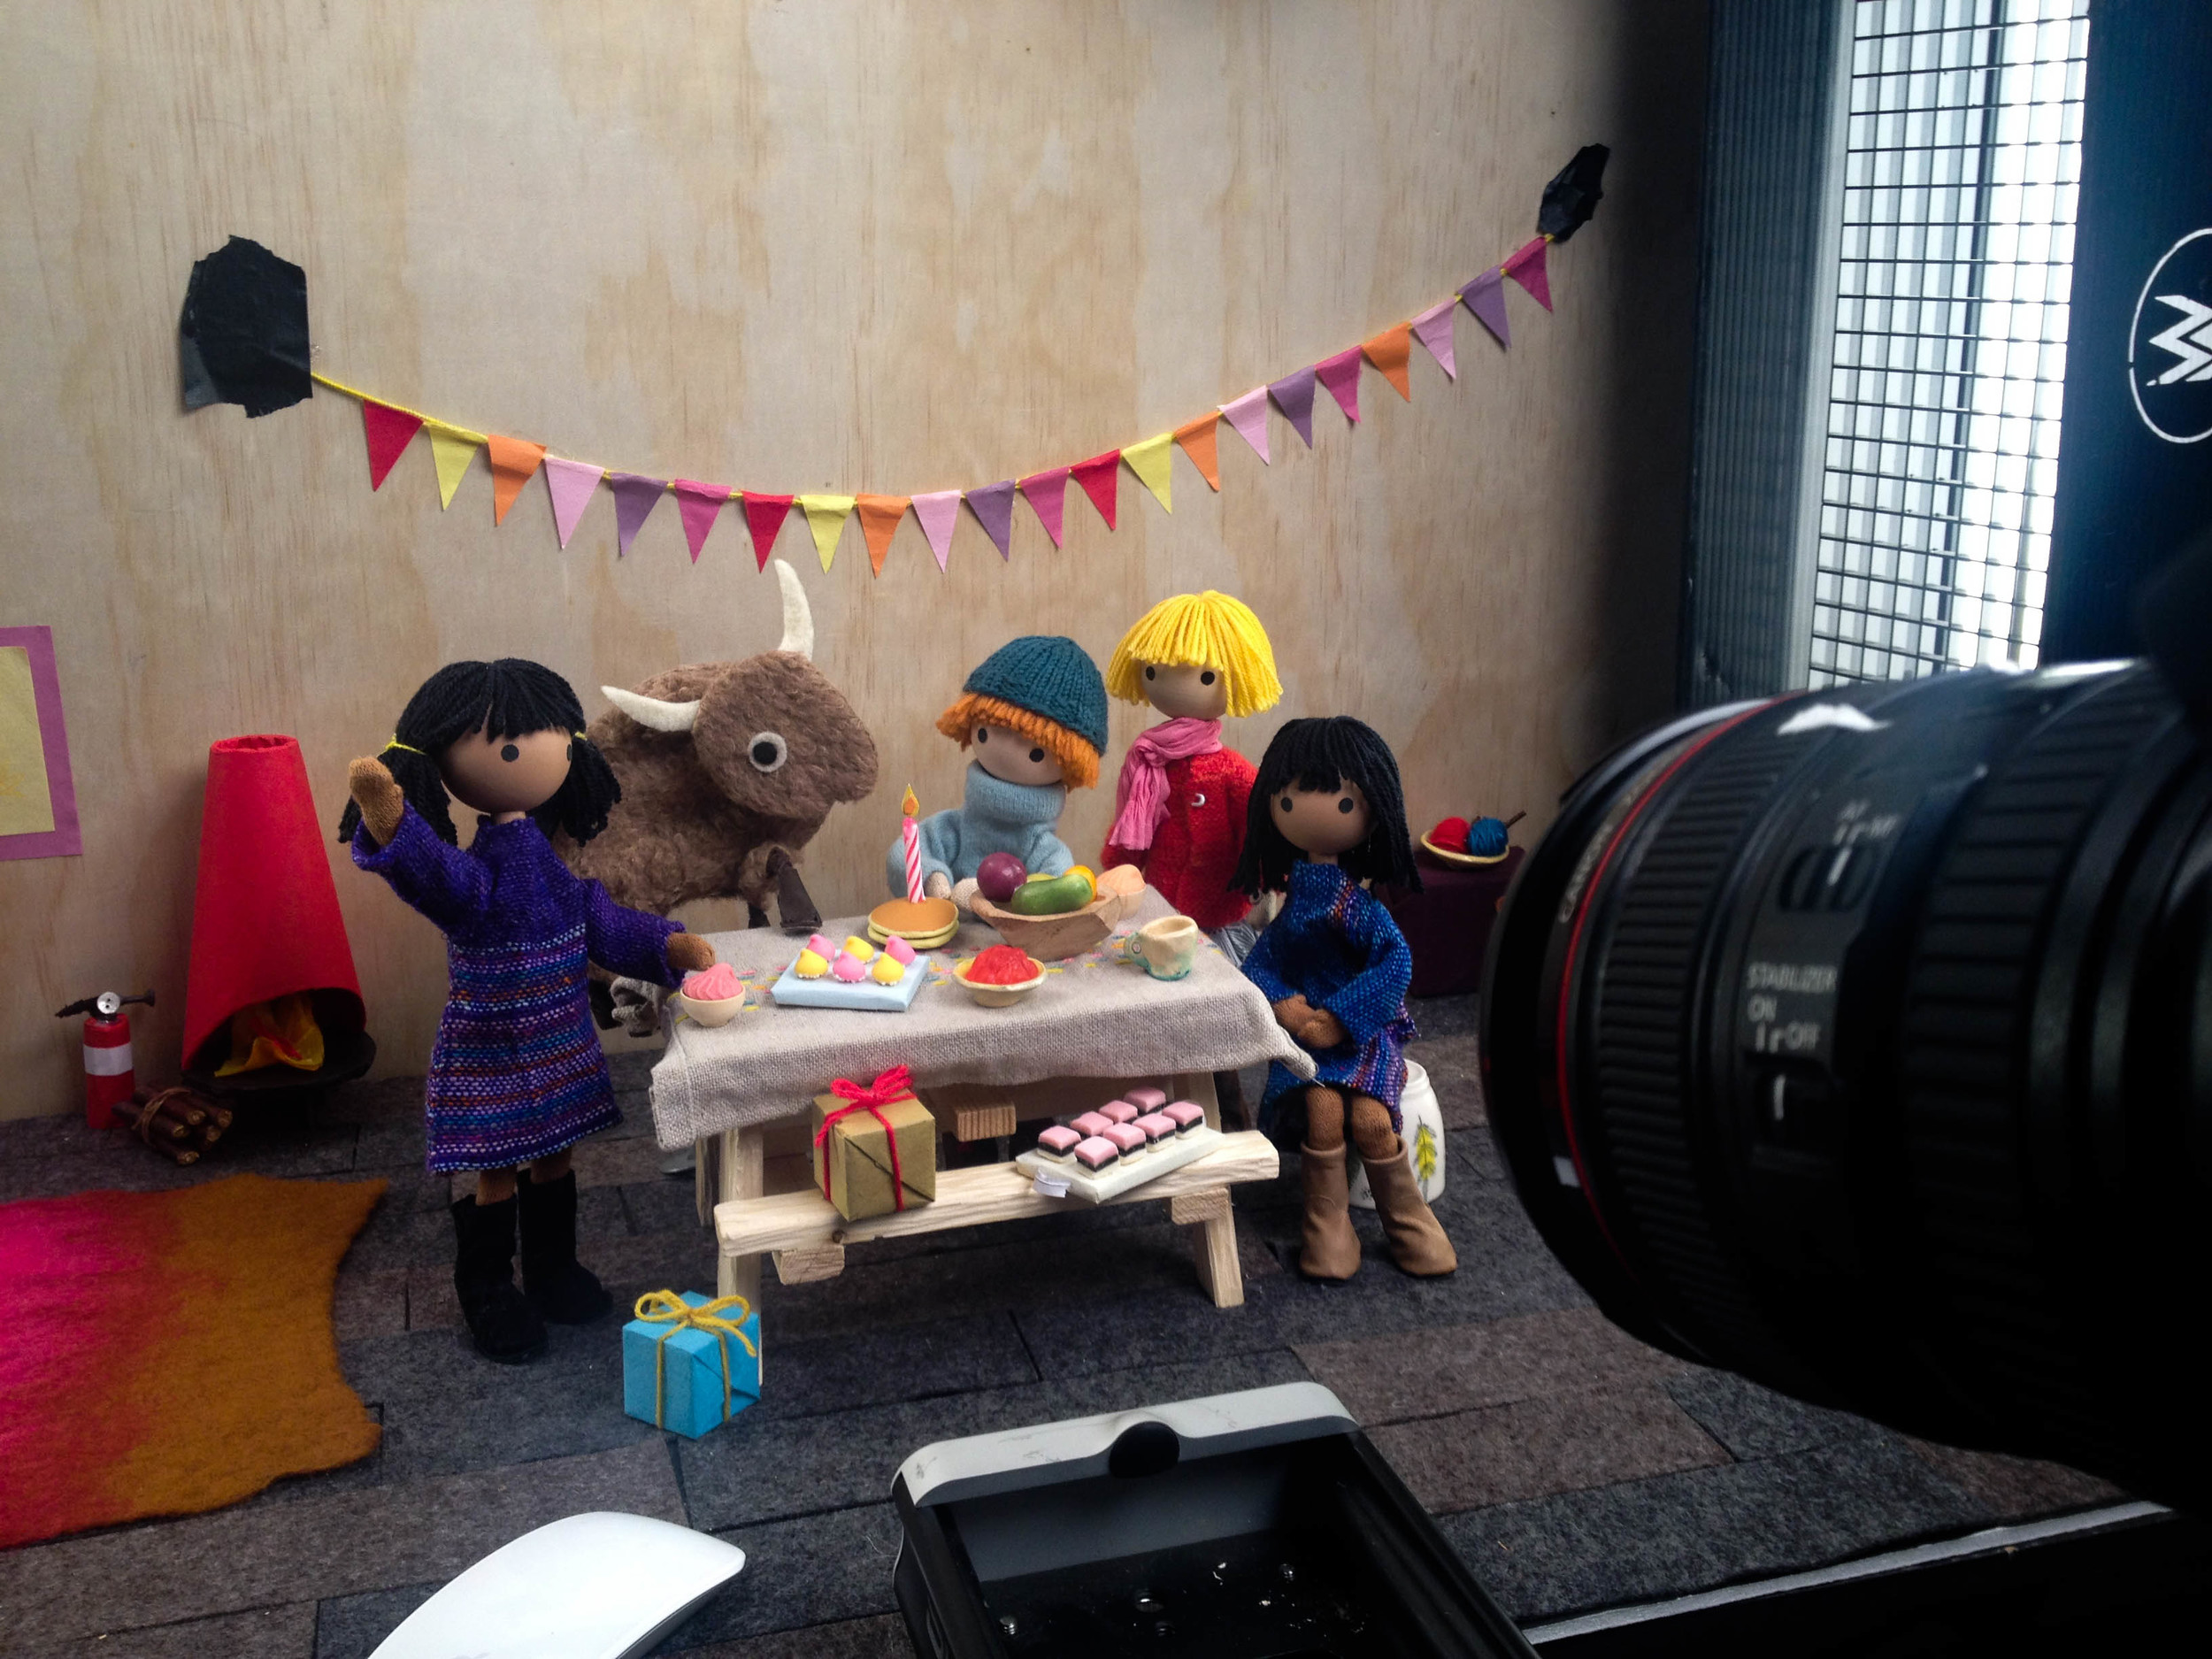 Shooting Appisode 5 with all her friends at Snowy & Chinook's cabin